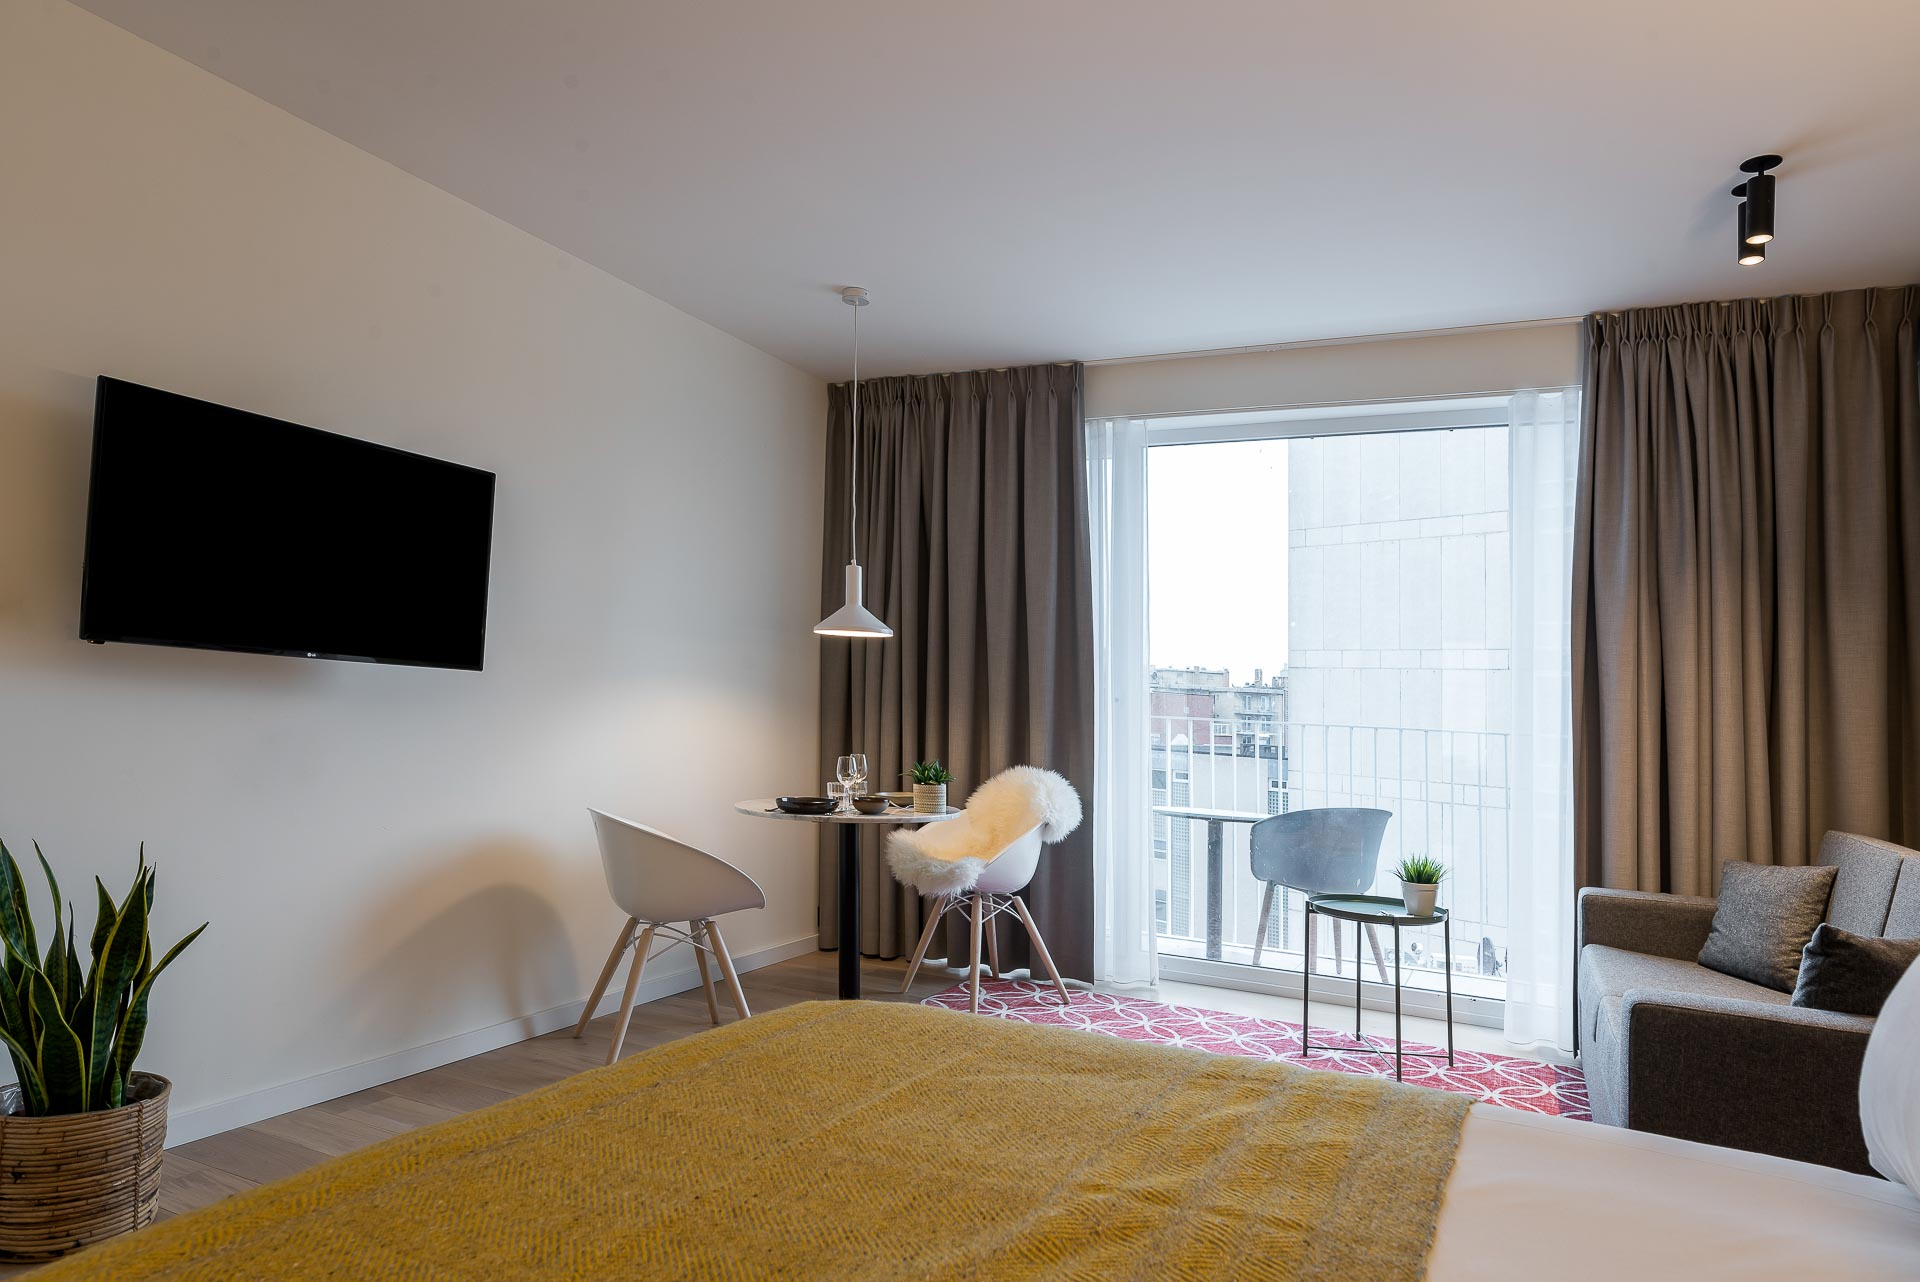 Penthouse Studio with terrace PREMIER SUITES PLUS Antwerp